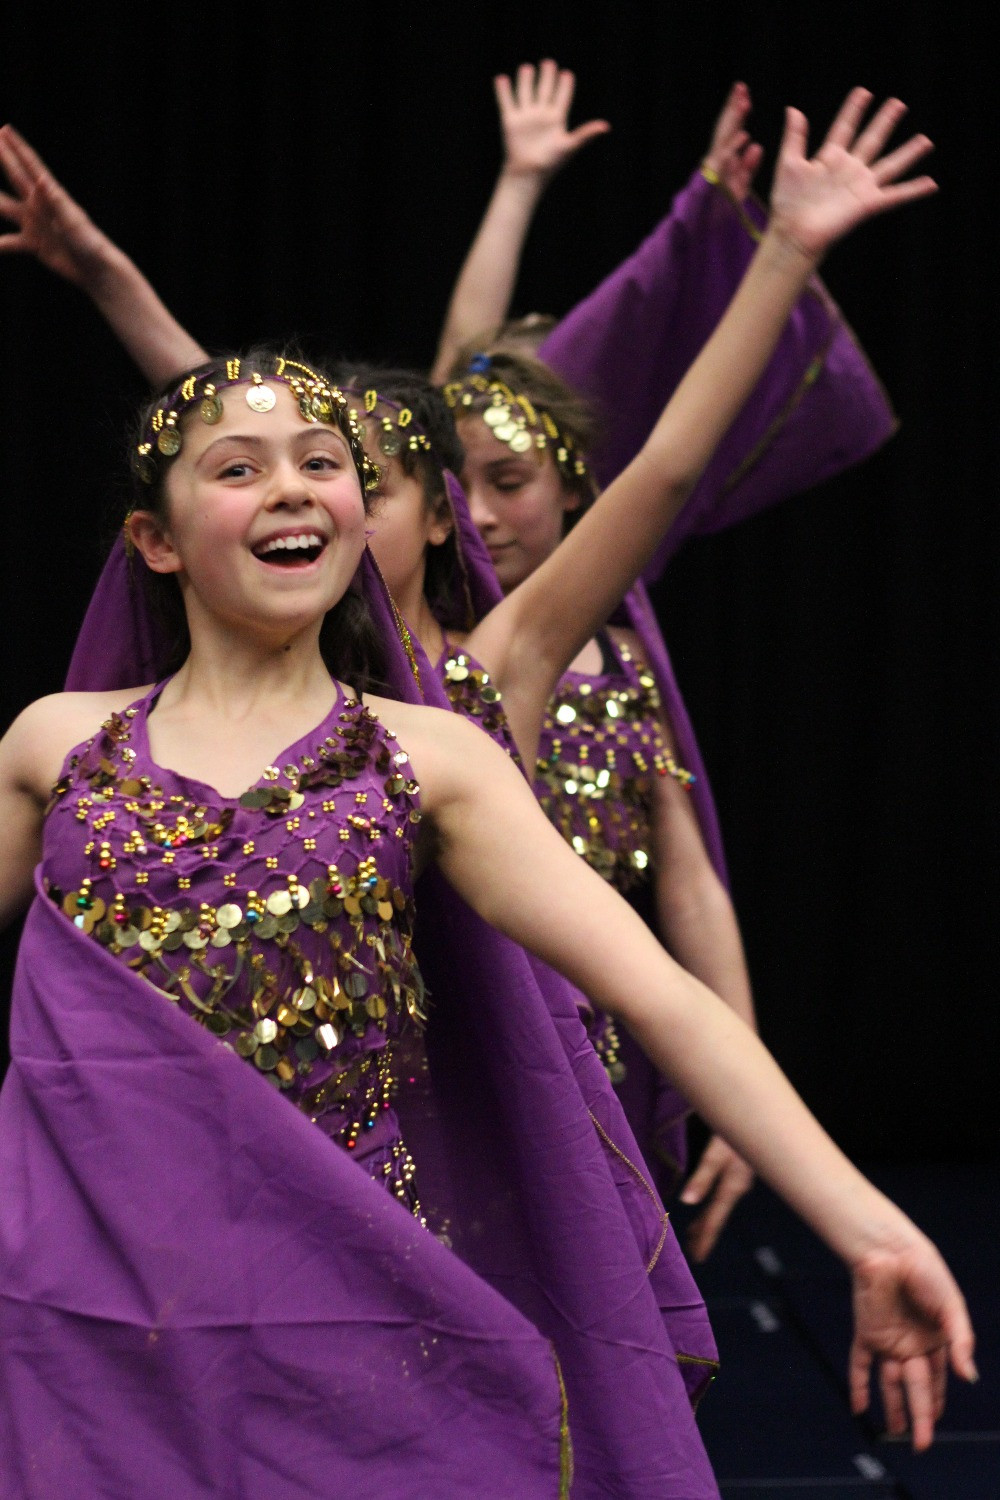 Well done to all dancers yesterday that attended the dress rehearsal. We hope you are getting as excited as we are about the shows this Saturday.